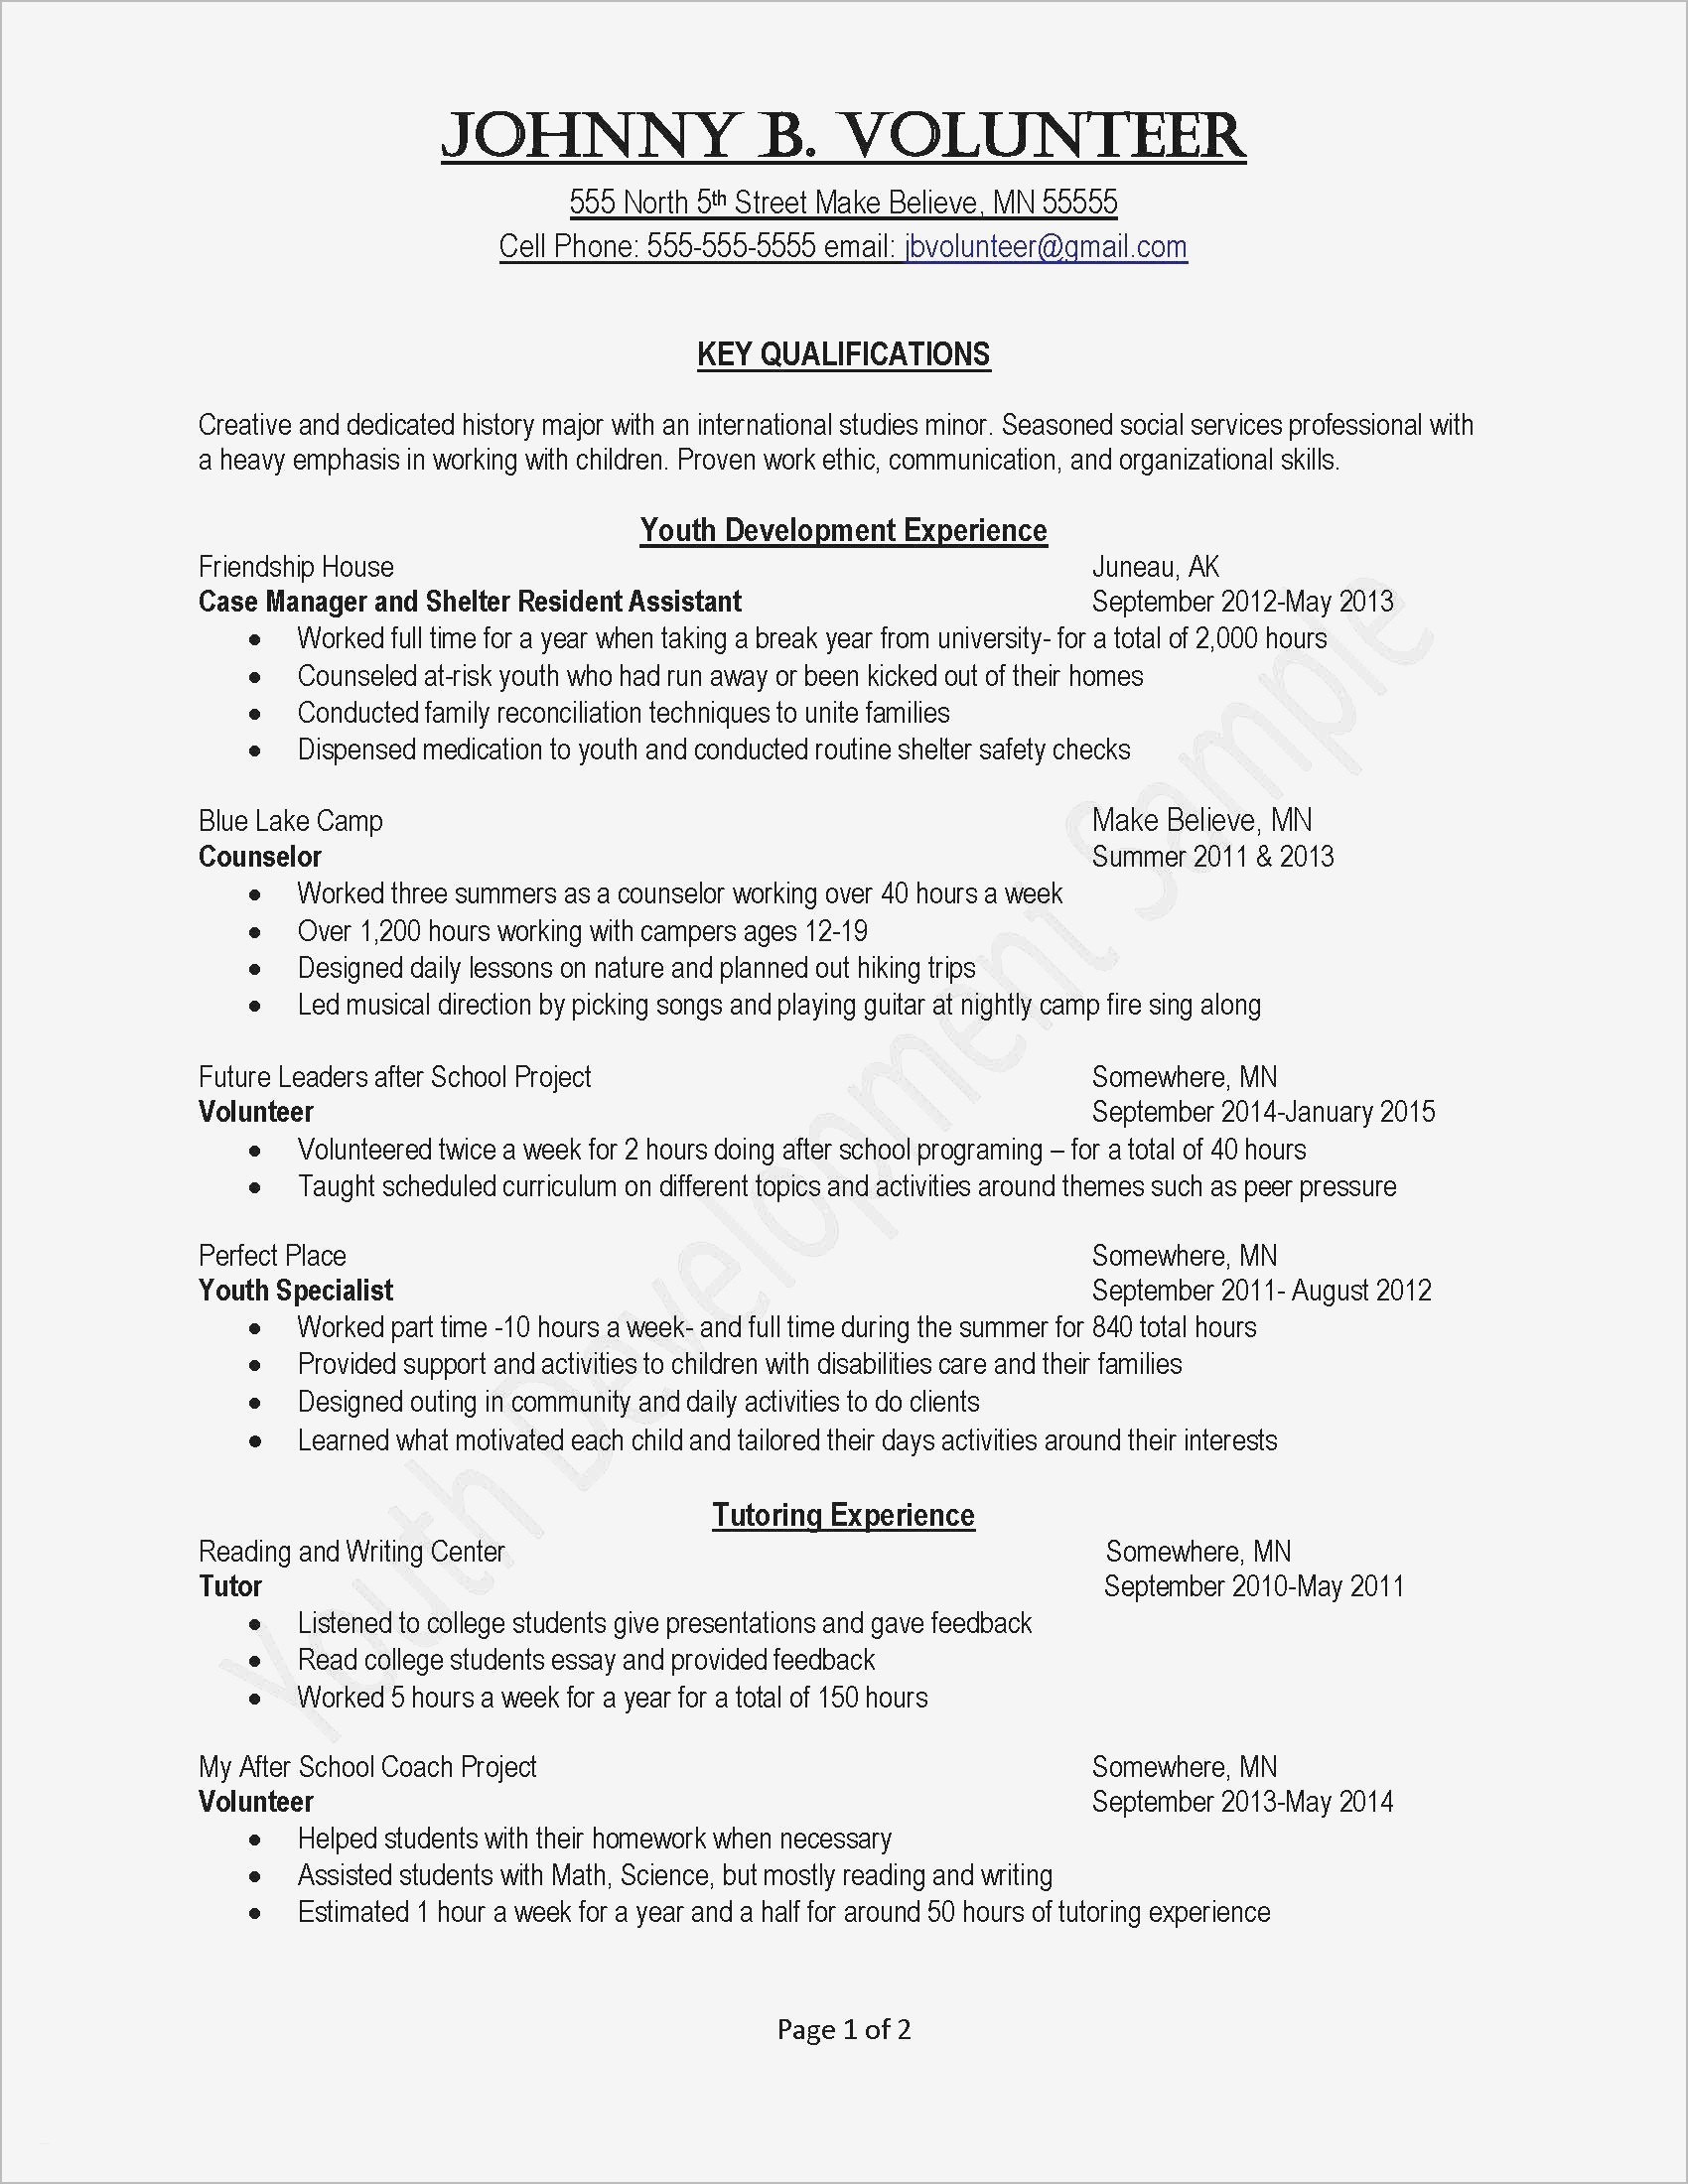 creative cover letter template Collection-How To Make A Resume And Cover Letter Free Creative Resume Cover Letters Examples New Job Fer Letter Template Us Copy Od 14-a